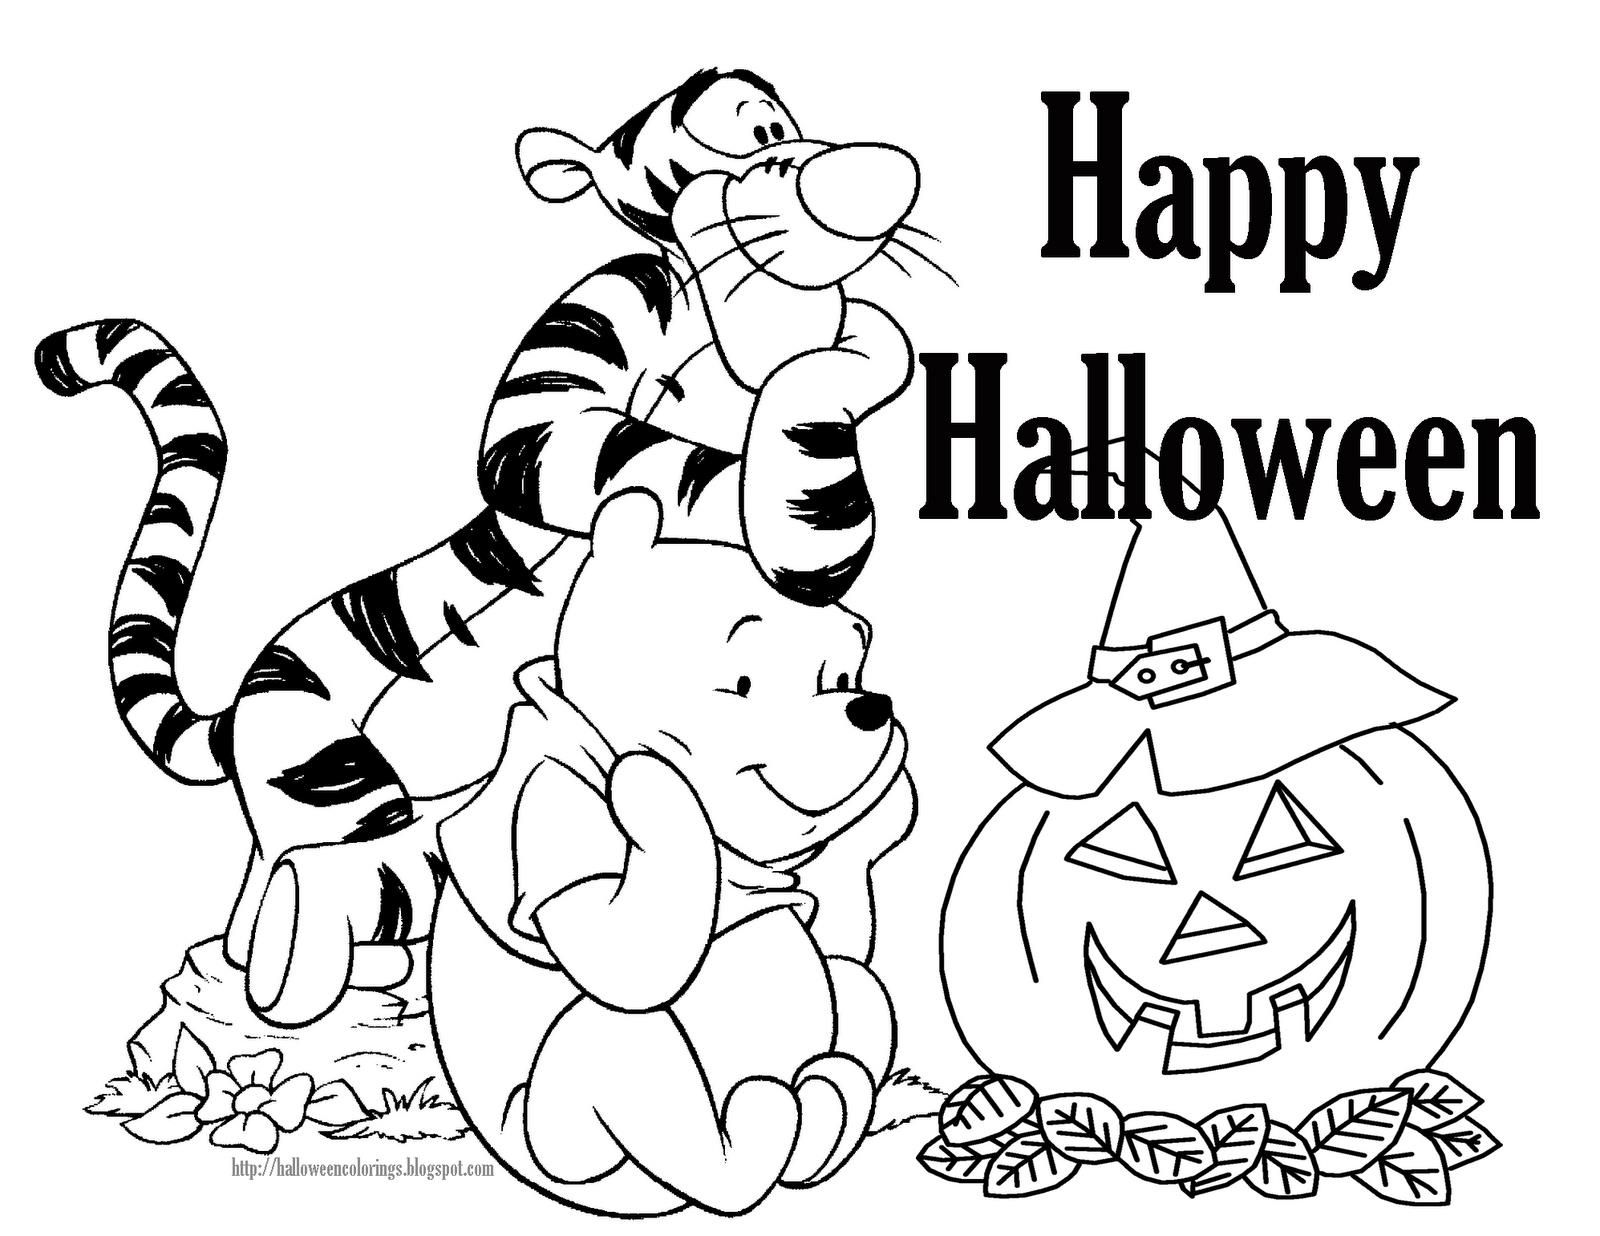 Colorings Free Halloween Coloring Pages